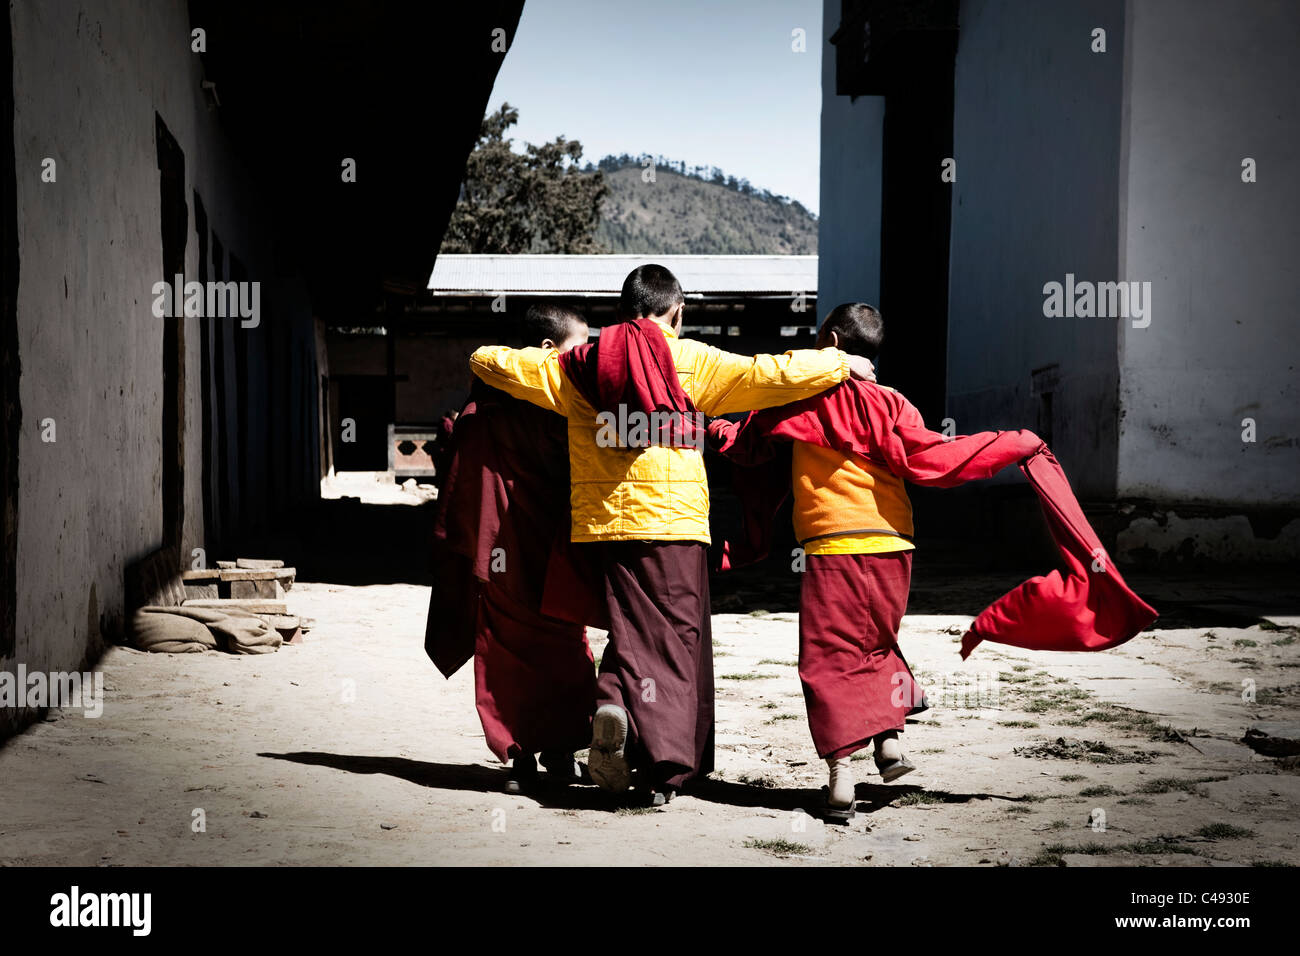 Three young monks walk together outside Gangteng Monastery, near Phobjika Valley, central Bhutan - Stock Image